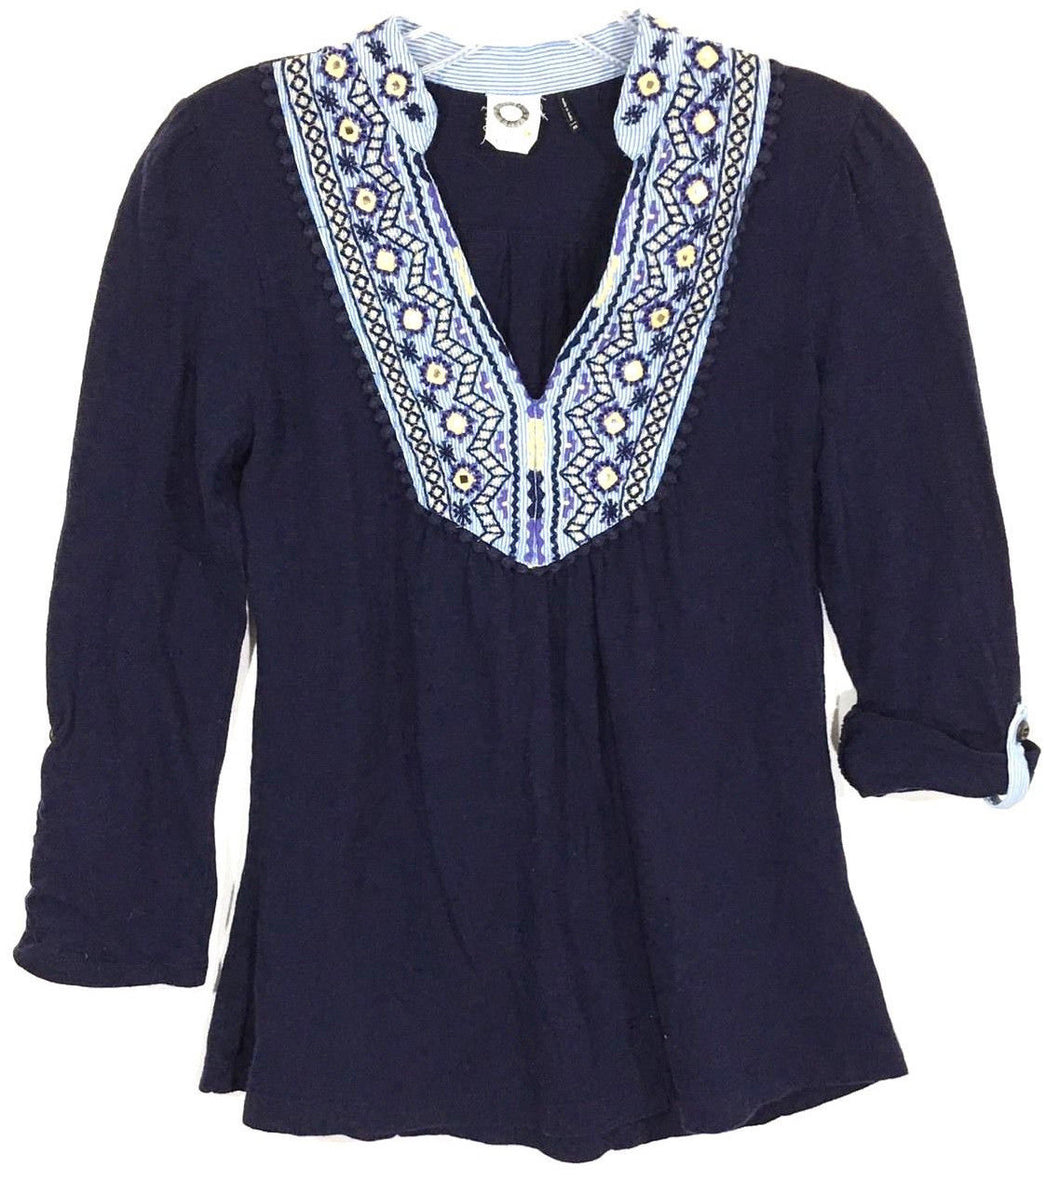 Anthropologie Akemi + Kin Blue Shirt Top Mirror Embroidered Neck Boho Womens XS - Preowned - FunkyCrap Boutique